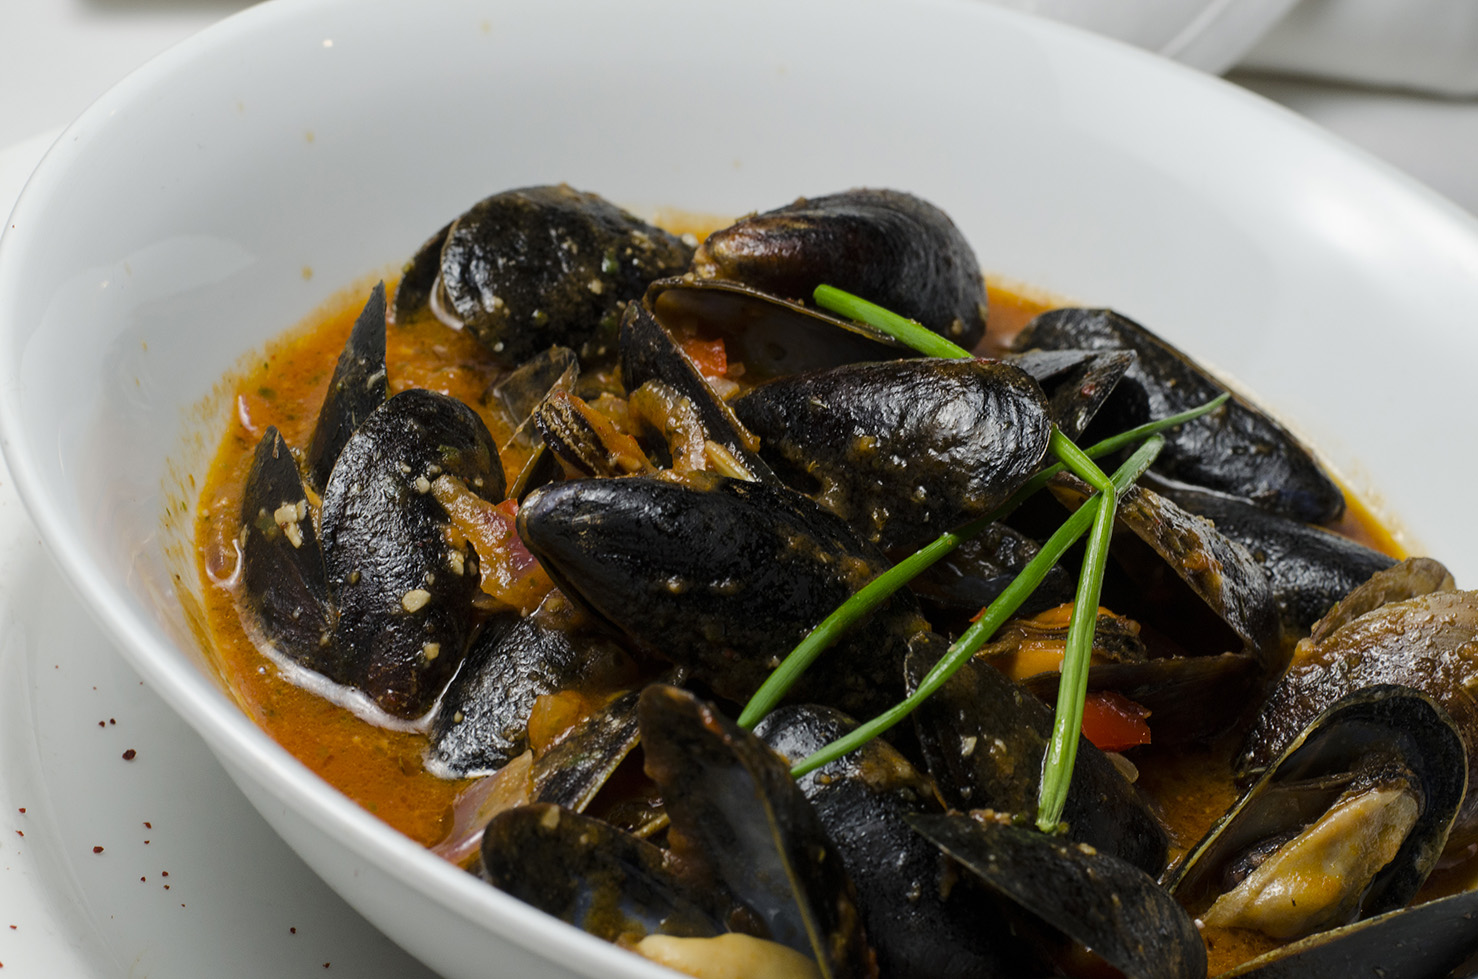 Cozze. One of Mezzo Restaurant & Lounge's specialties.